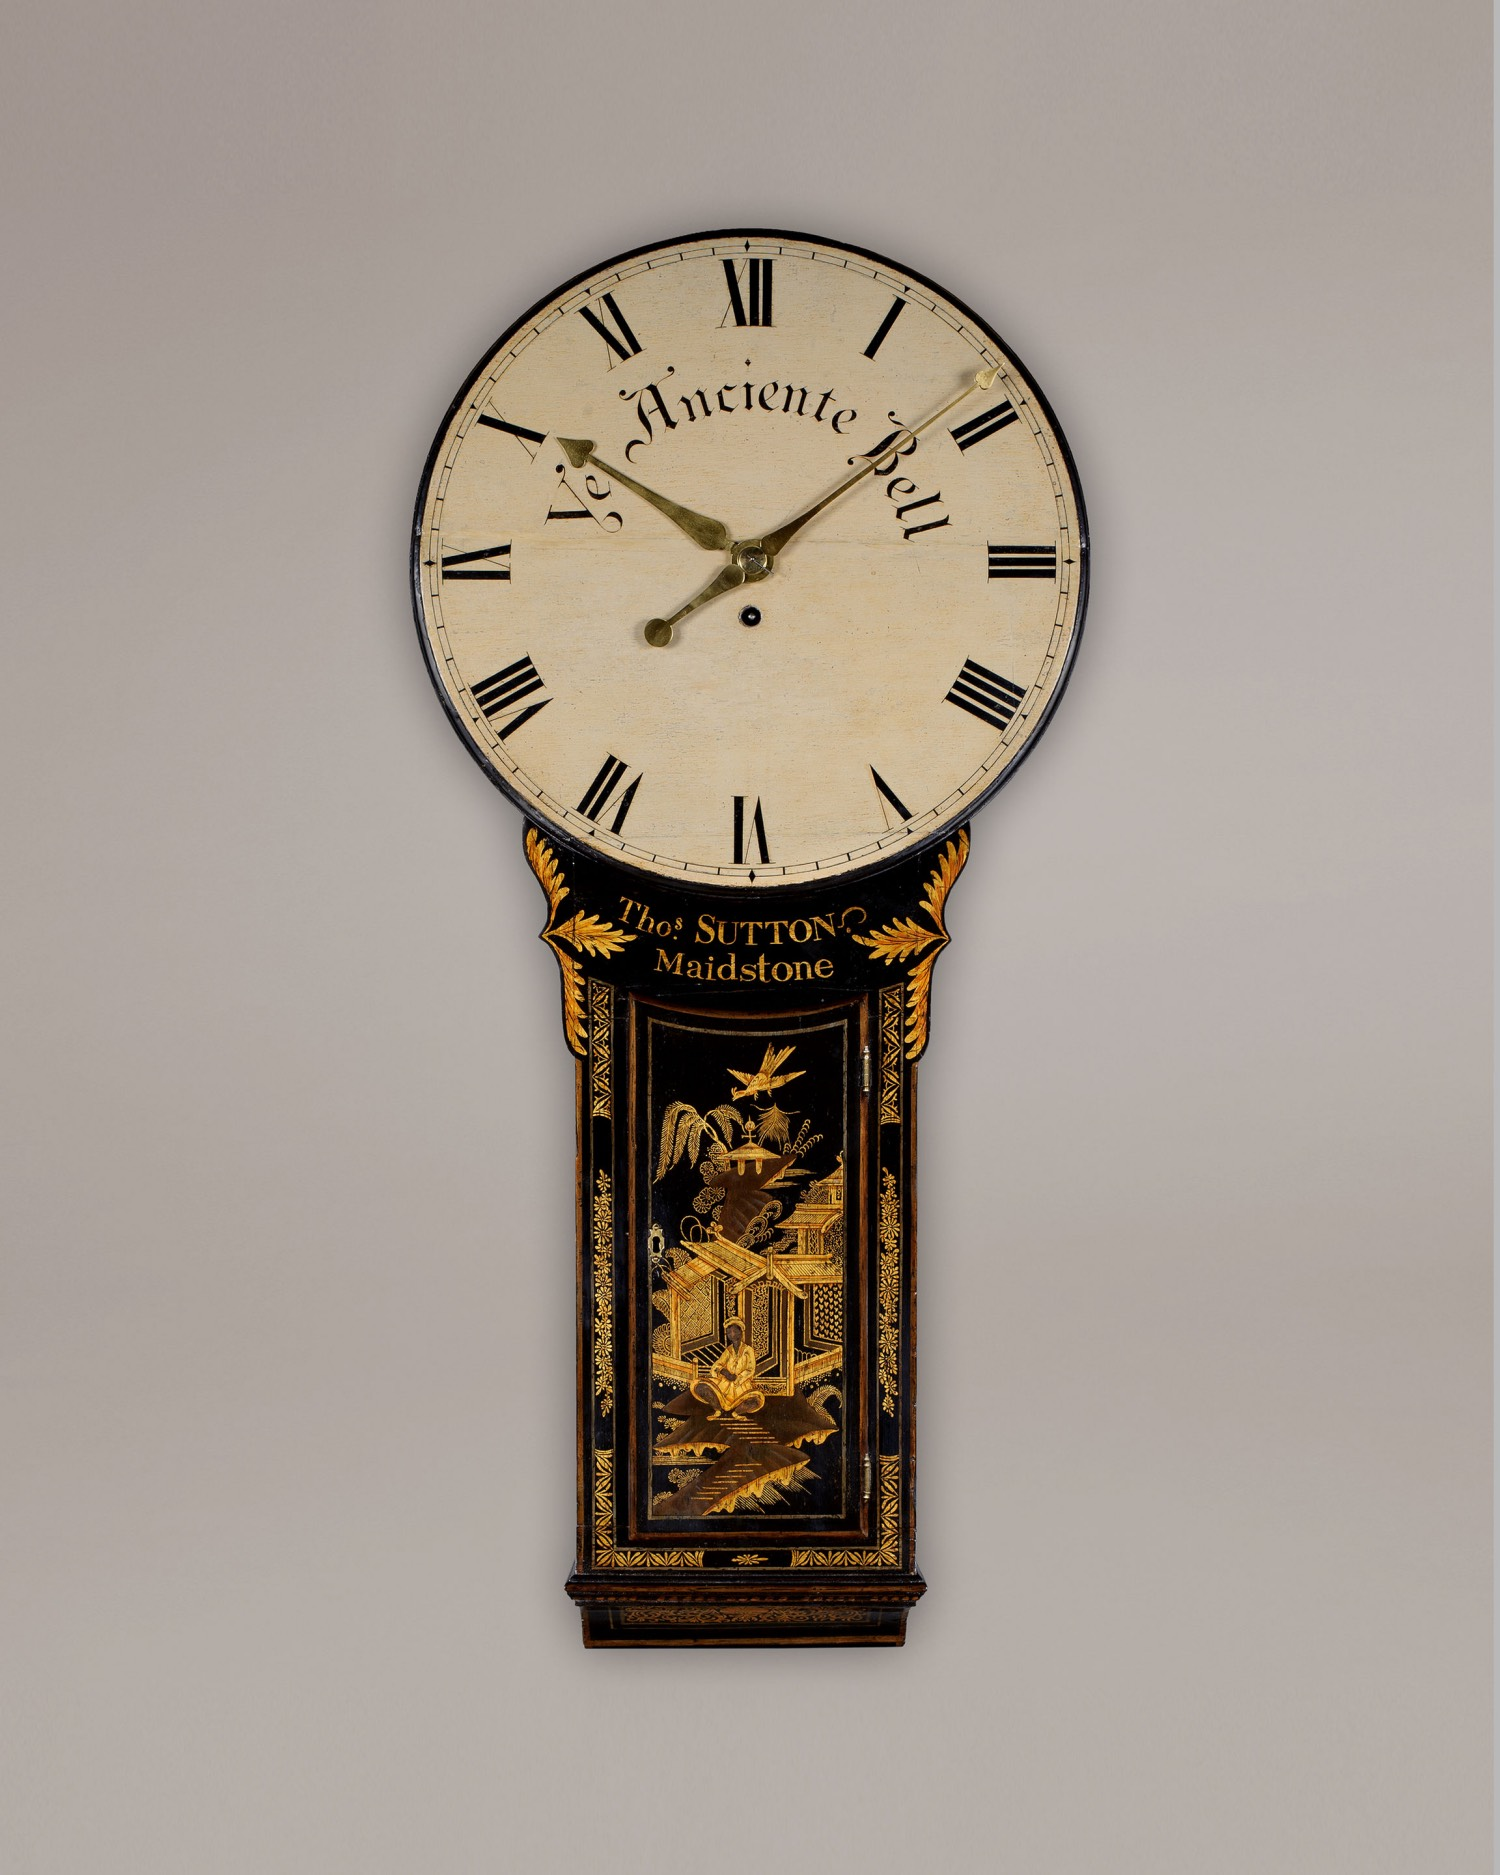 THOMAS SUTTON. A good George III period tavern clock